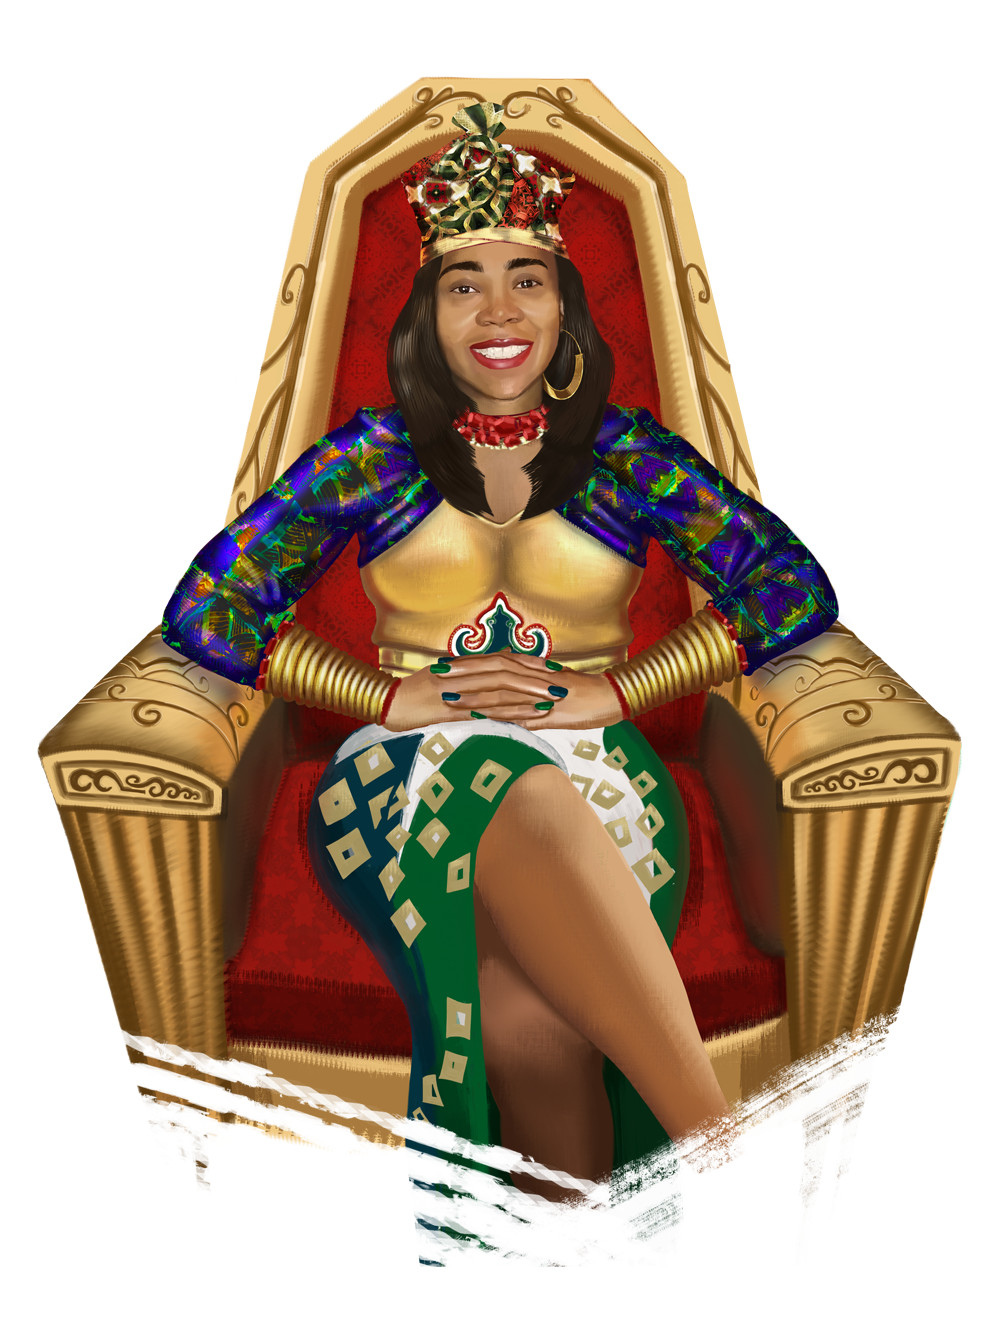 Seated Queen